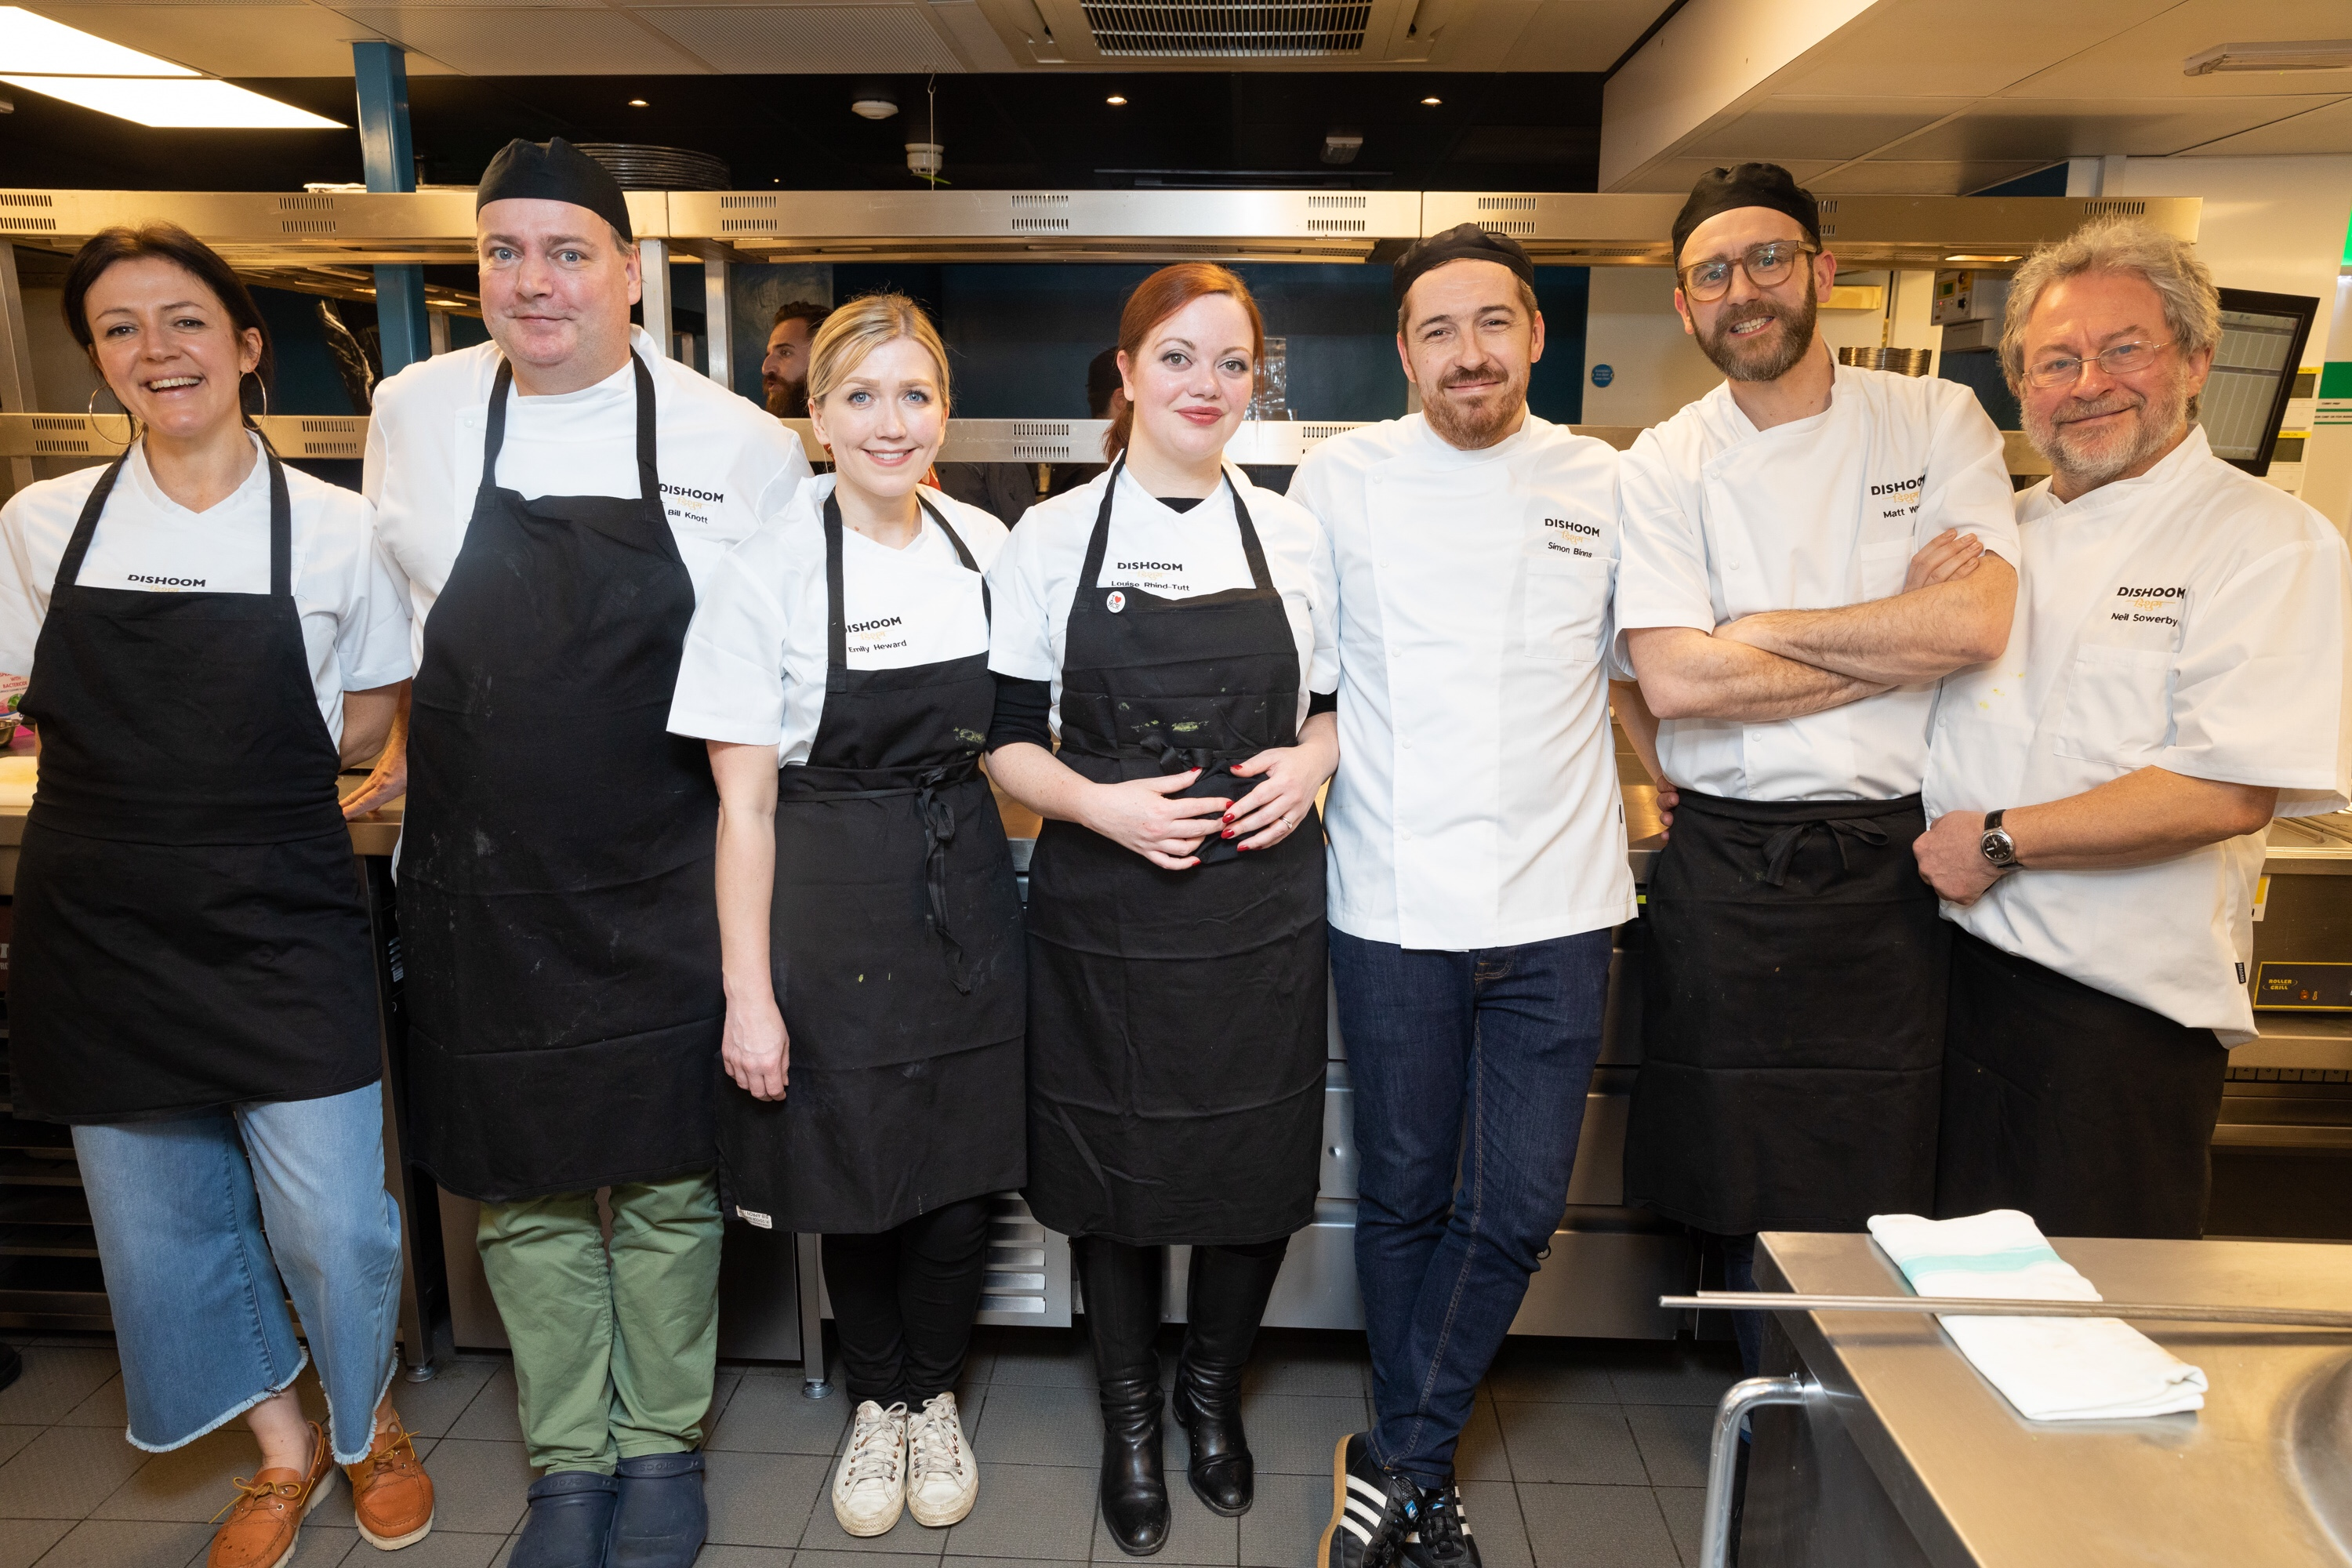 Too Many Critics Raises over £ 22,000 for Action Against Hunger